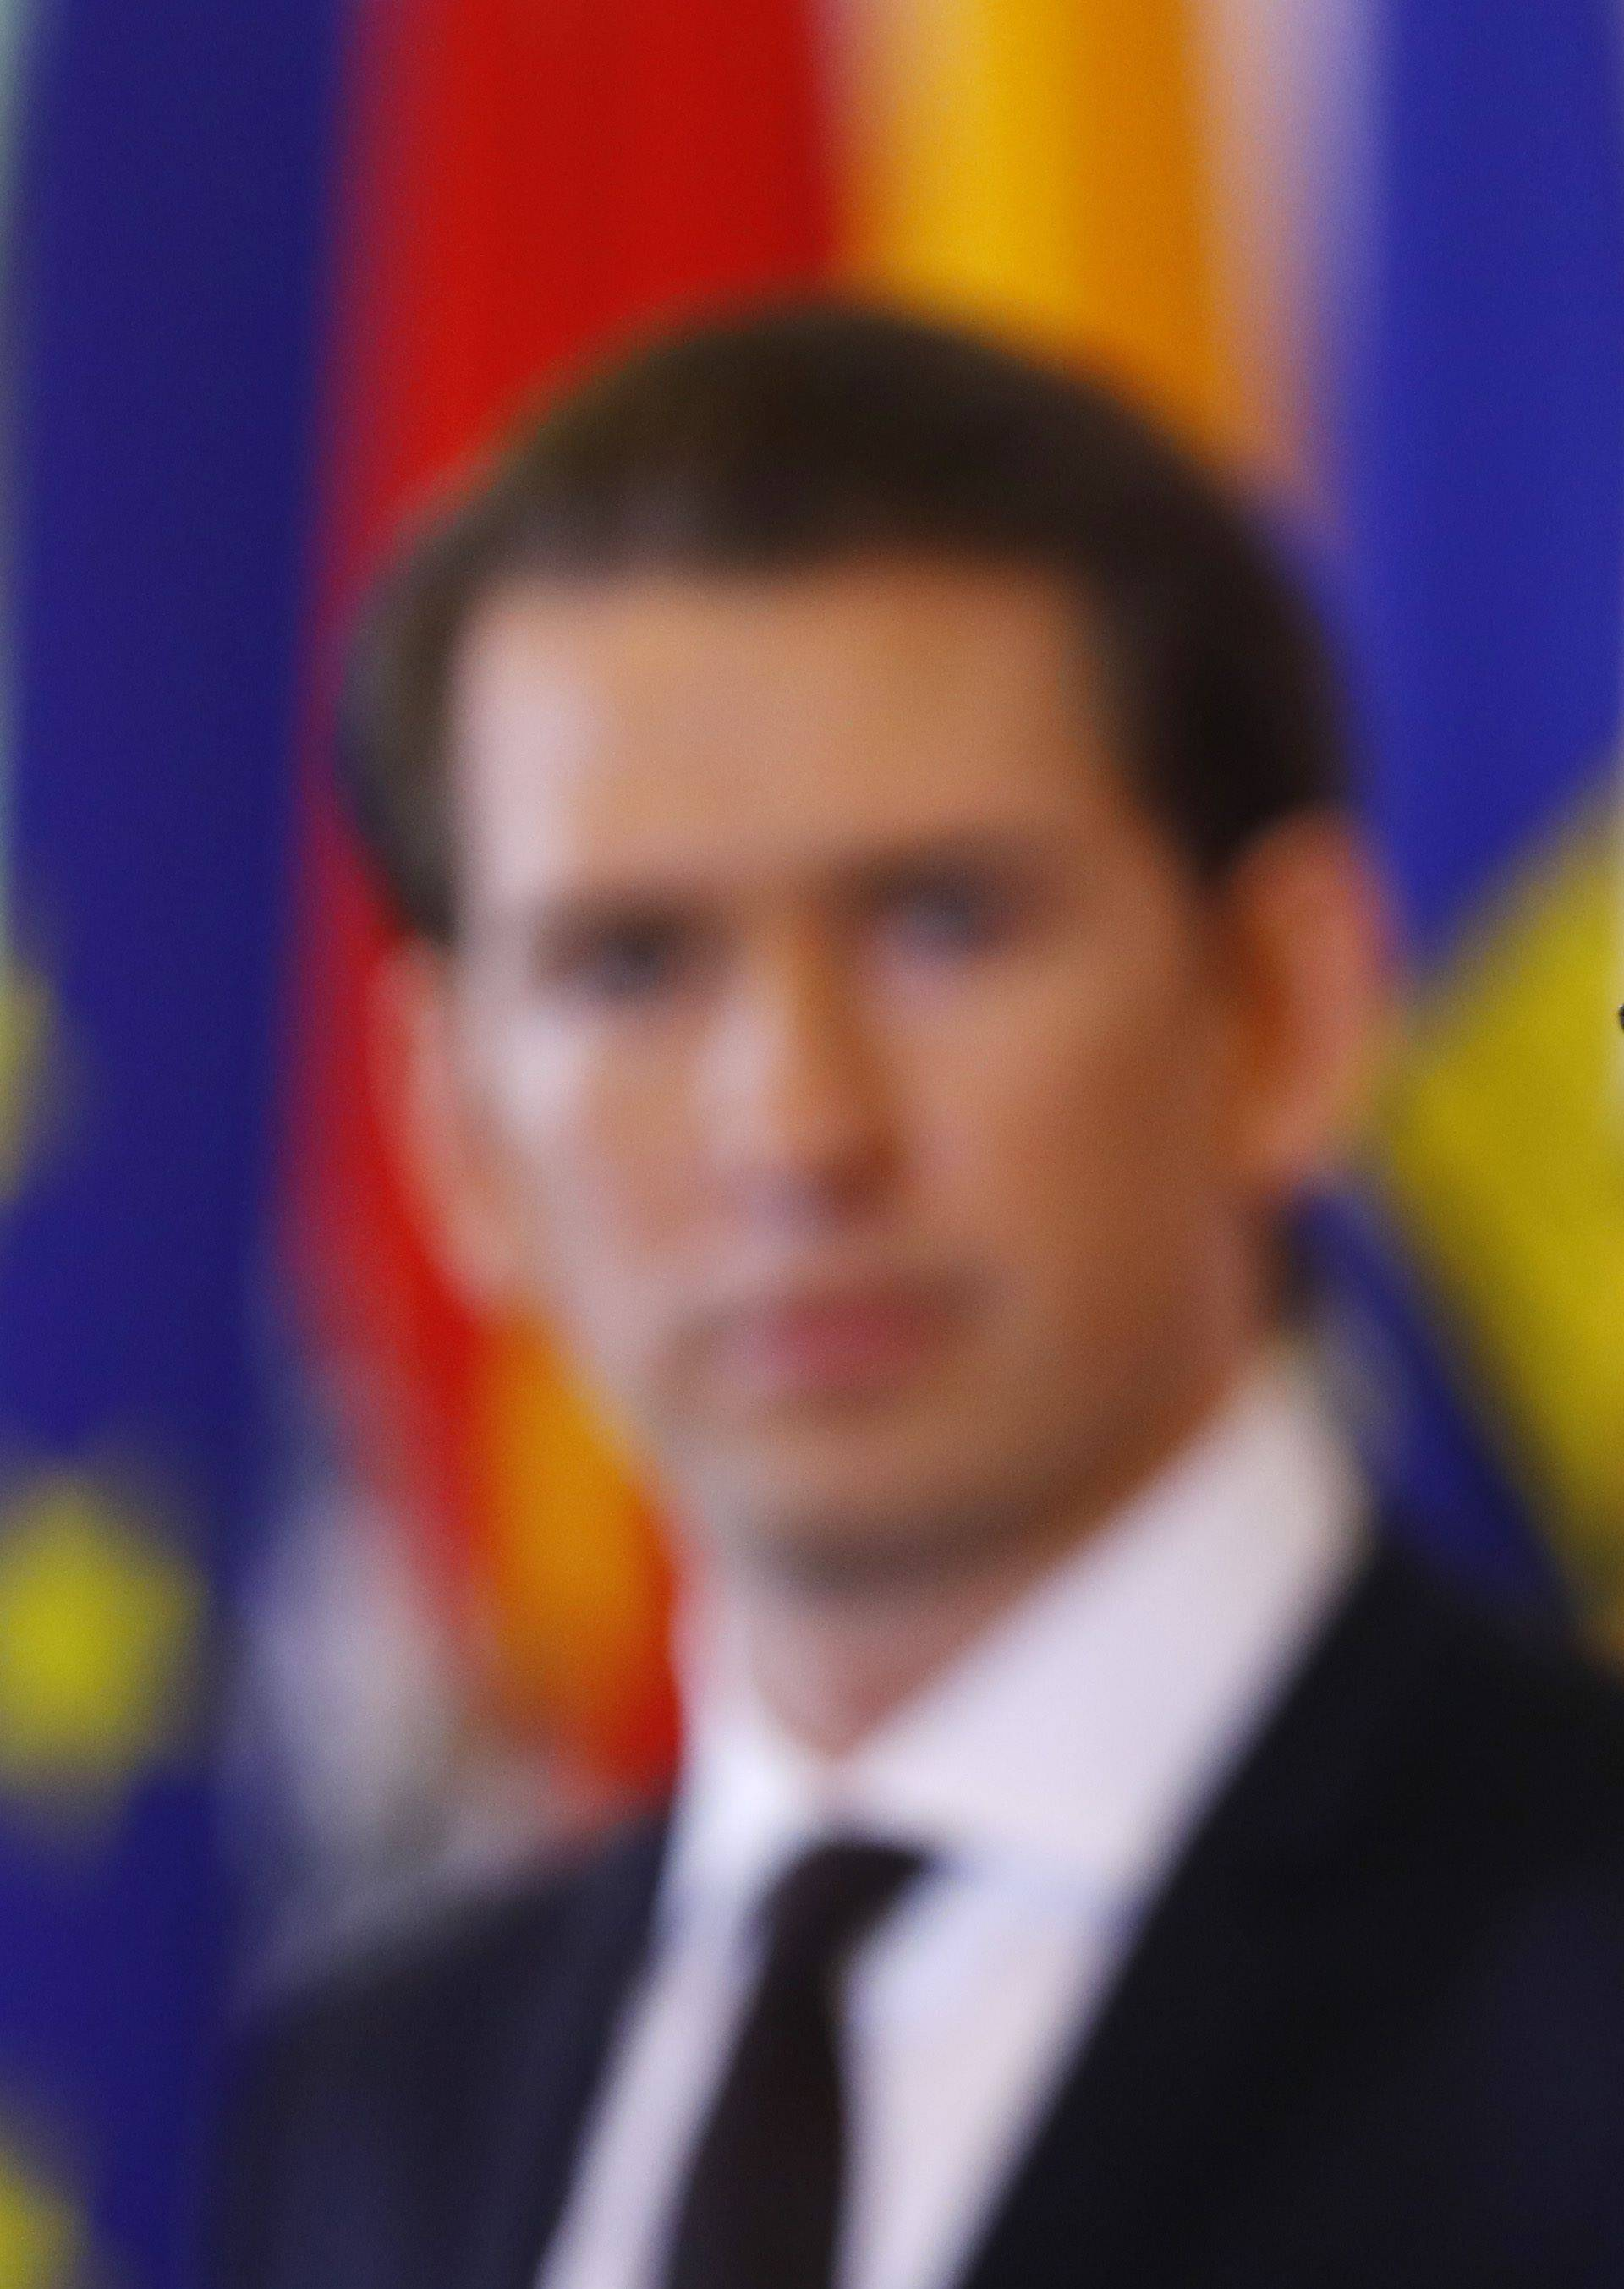 Austria's Chancellor Kurz and Vice Chancellor Strache address a news conference after a cabinet meeting in Vienna